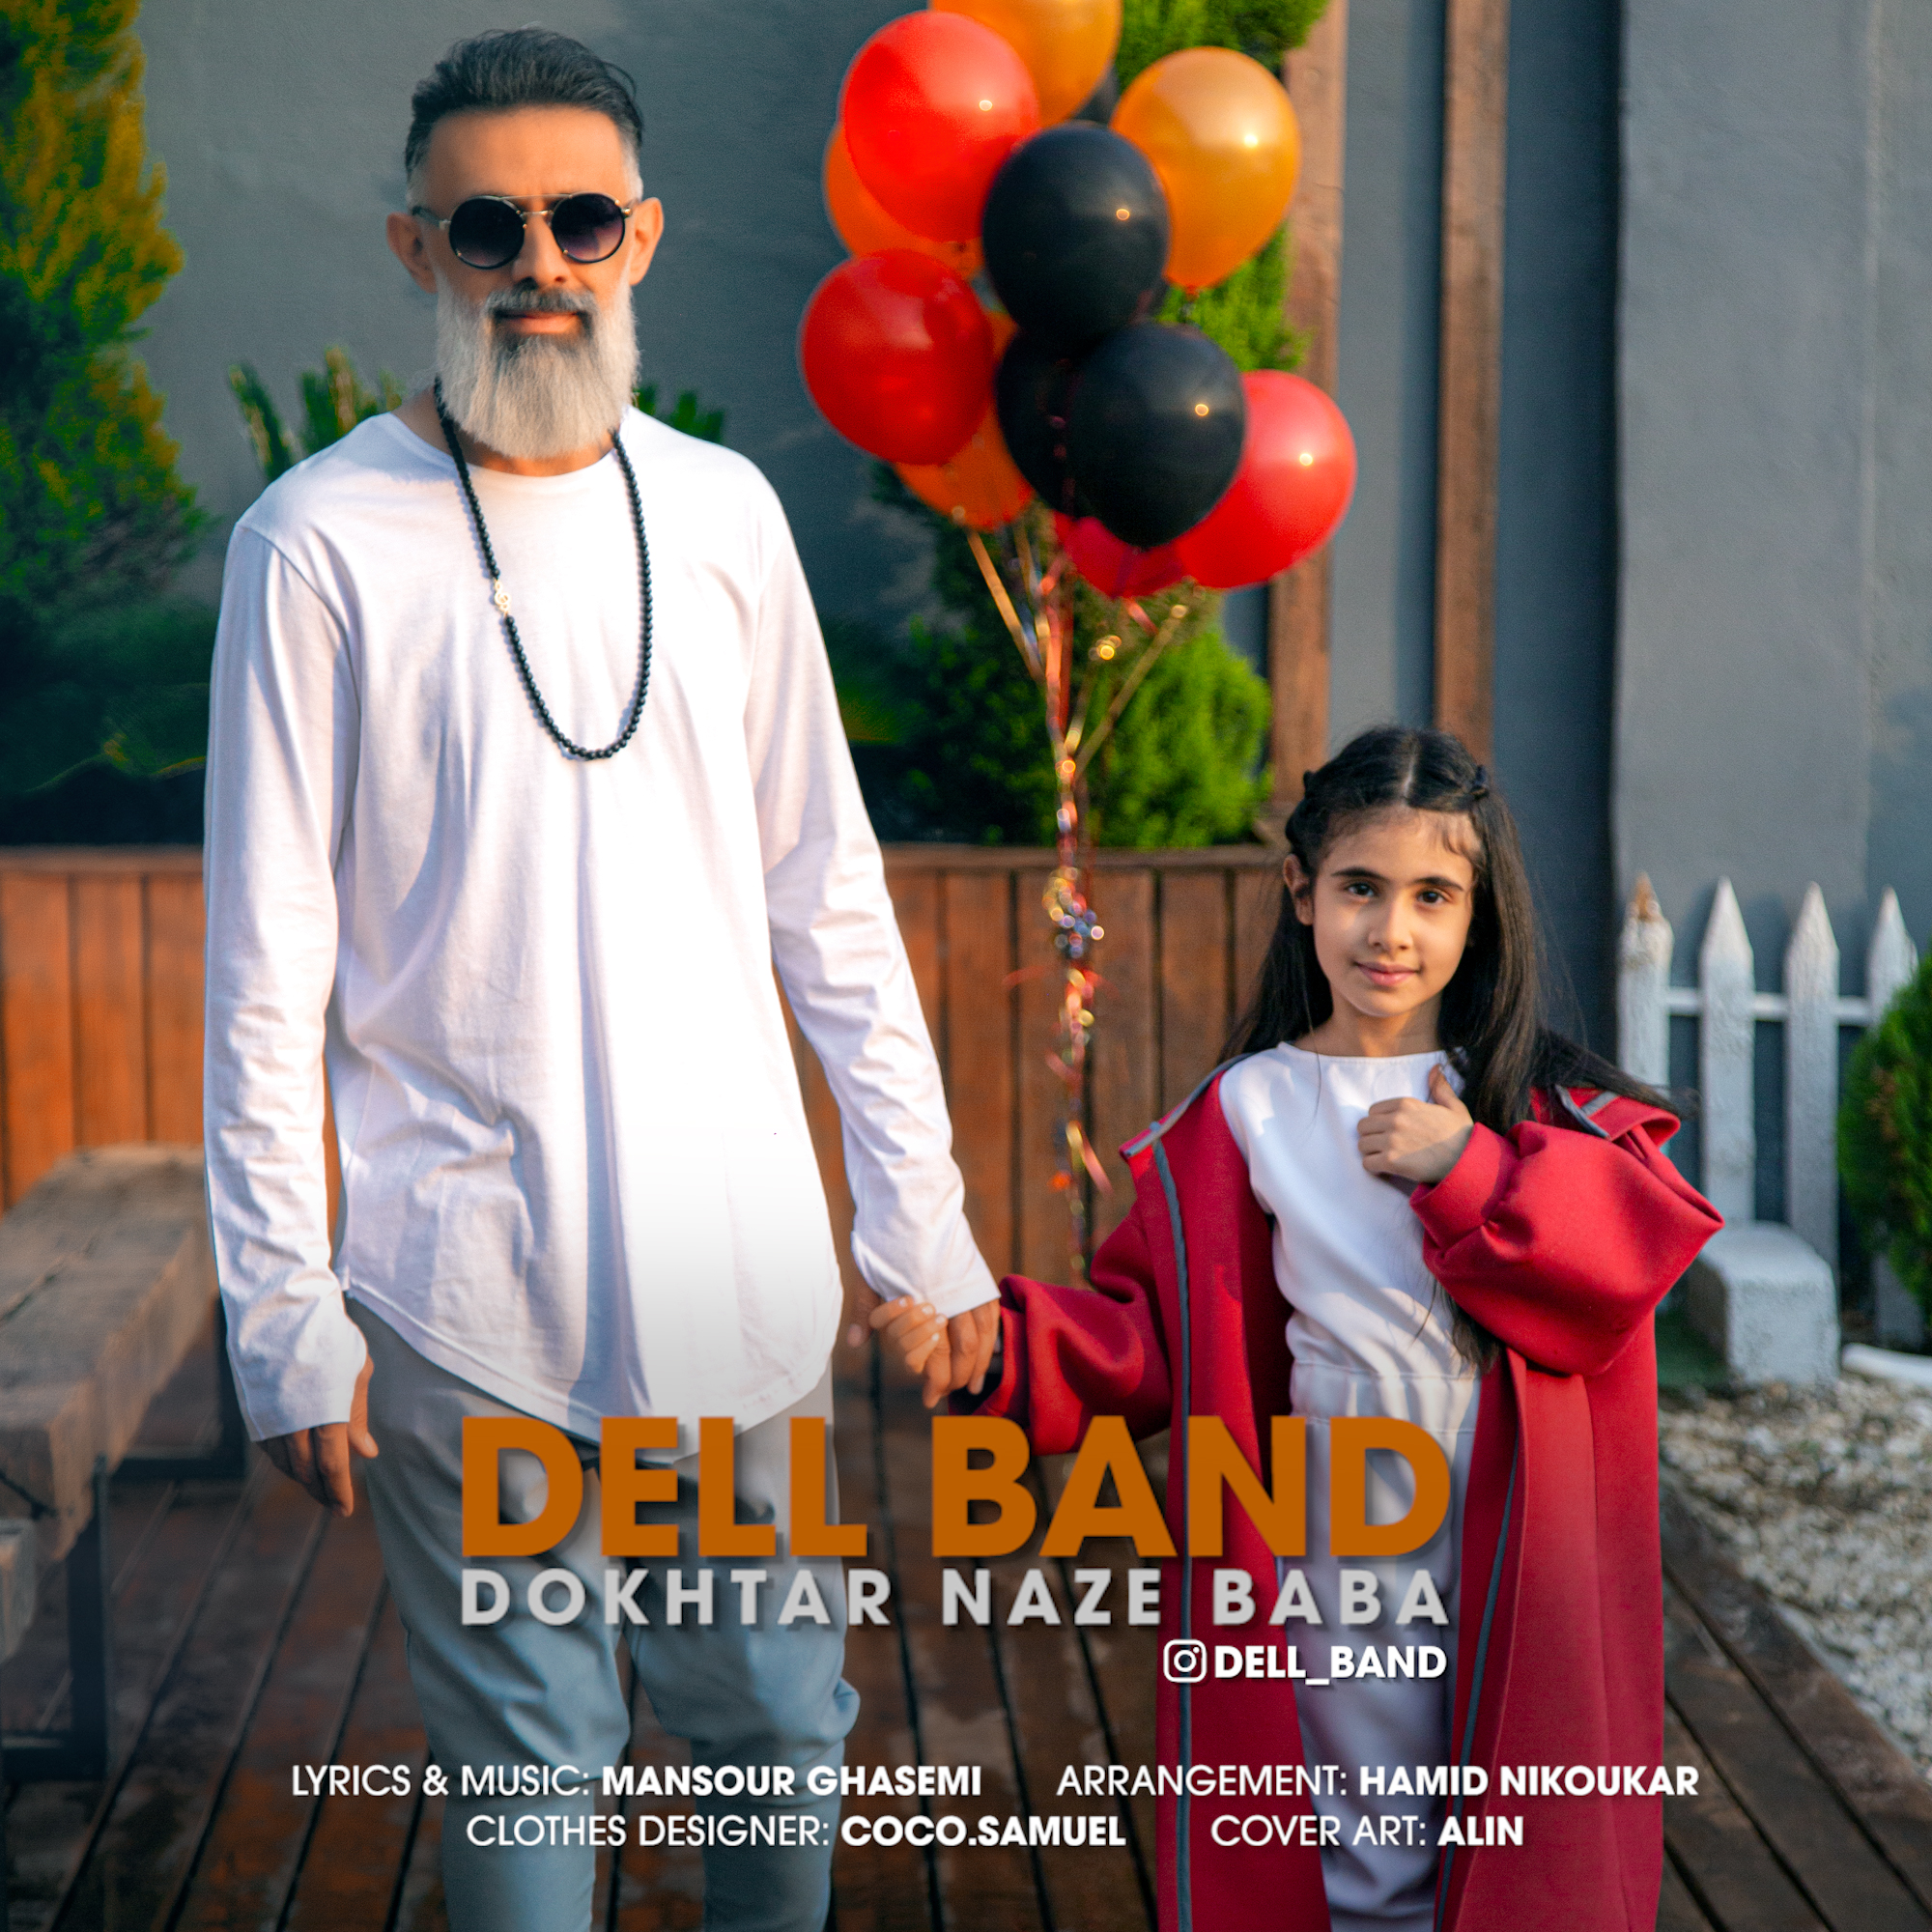 Dell Band – Dokhtare Naze Baba